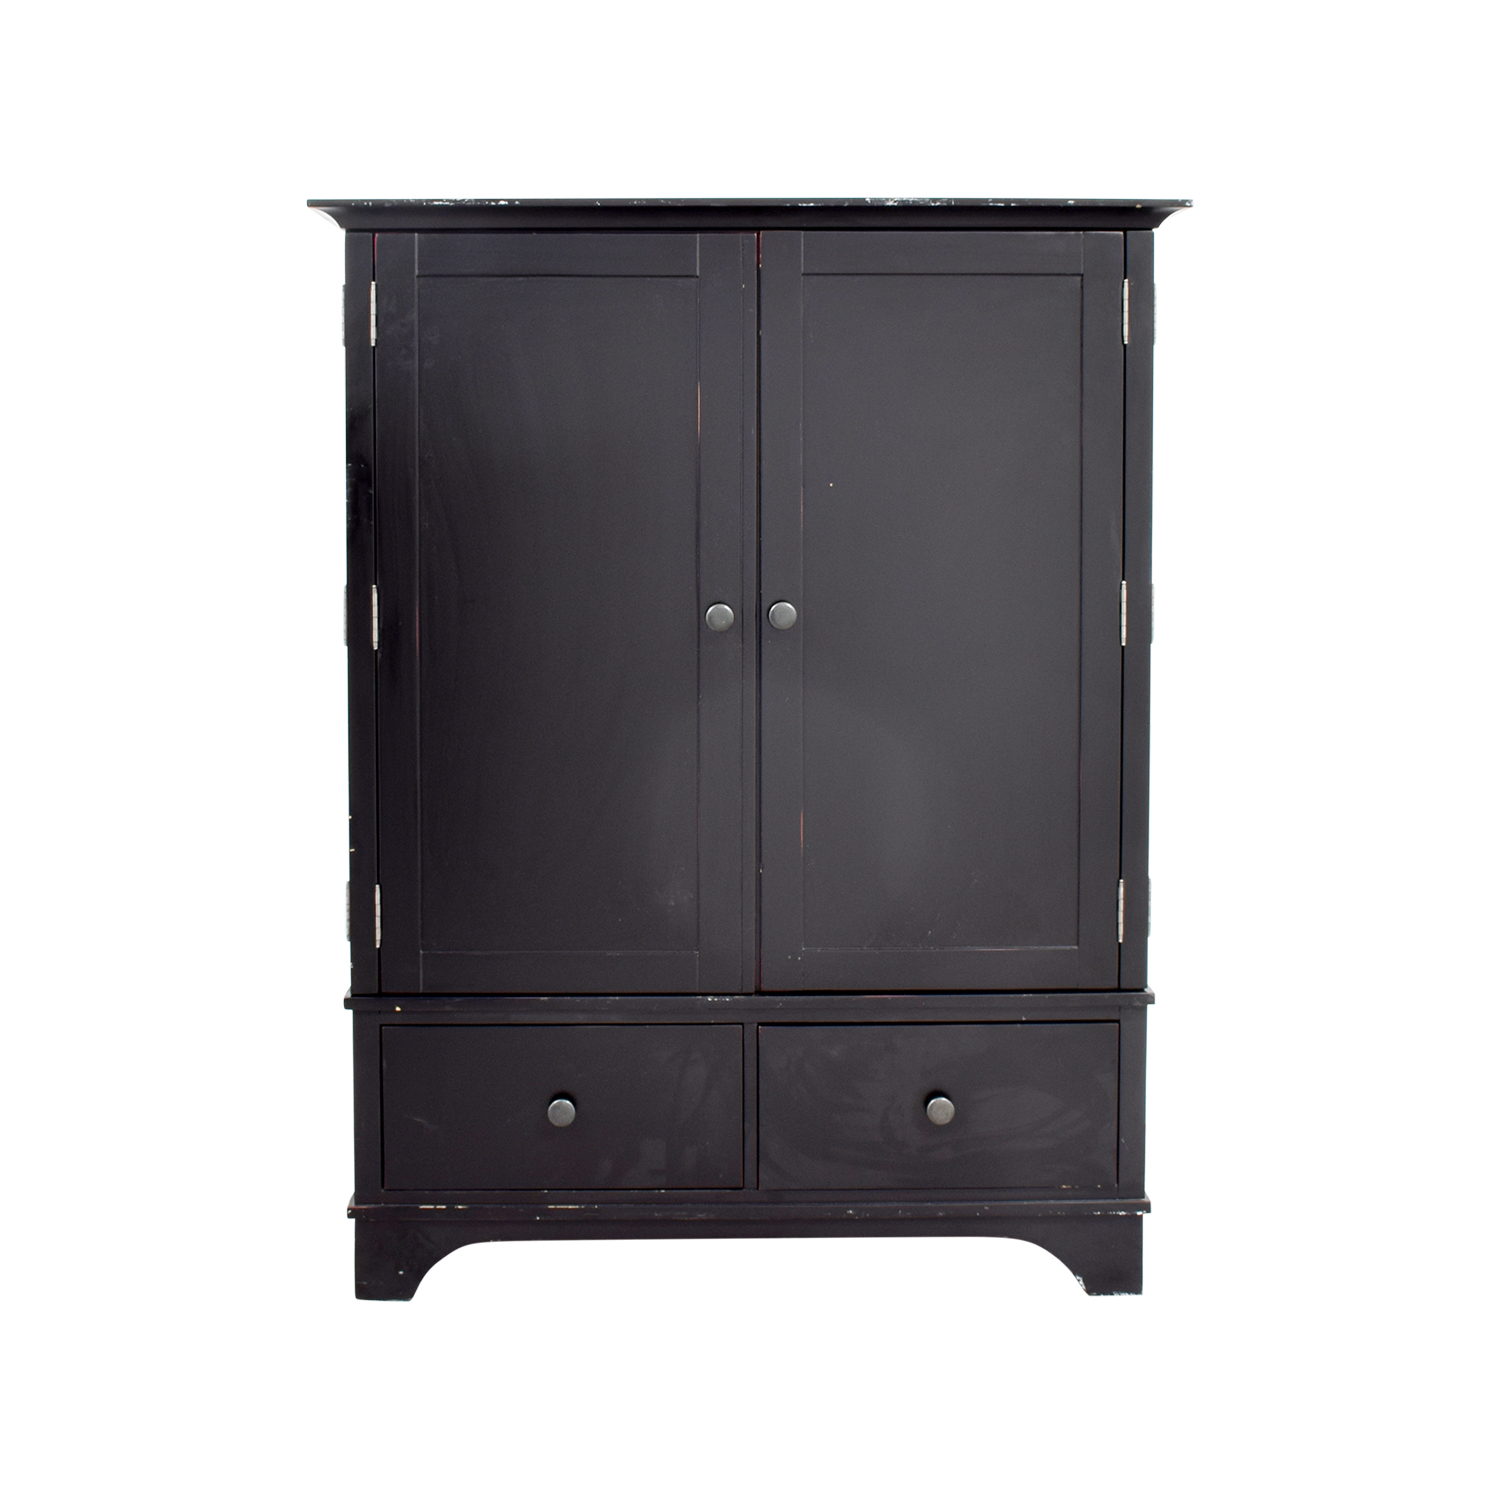 90% OFF - Pottery Barn Pottery Barn Media Cabinet / Storage